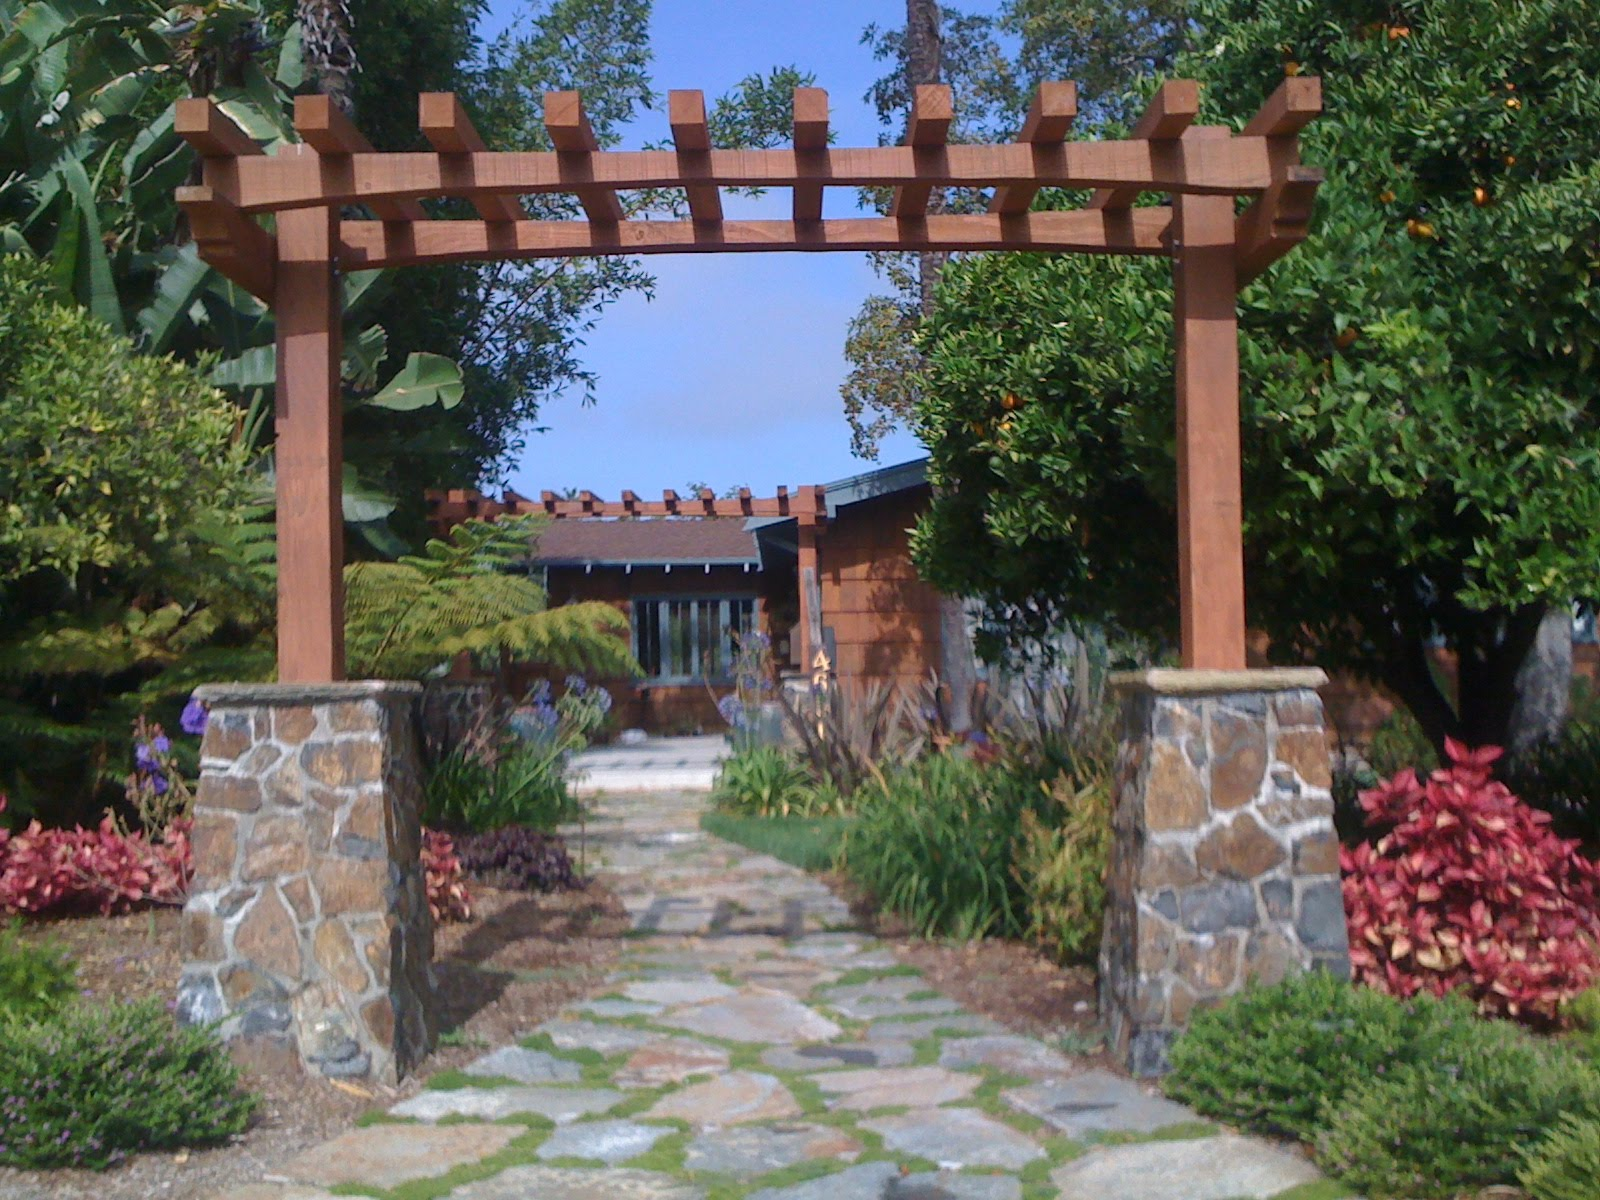 Lawnless front yard examples » Sage Outdoor Designs on Outdoor Front Yard Ideas id=18804